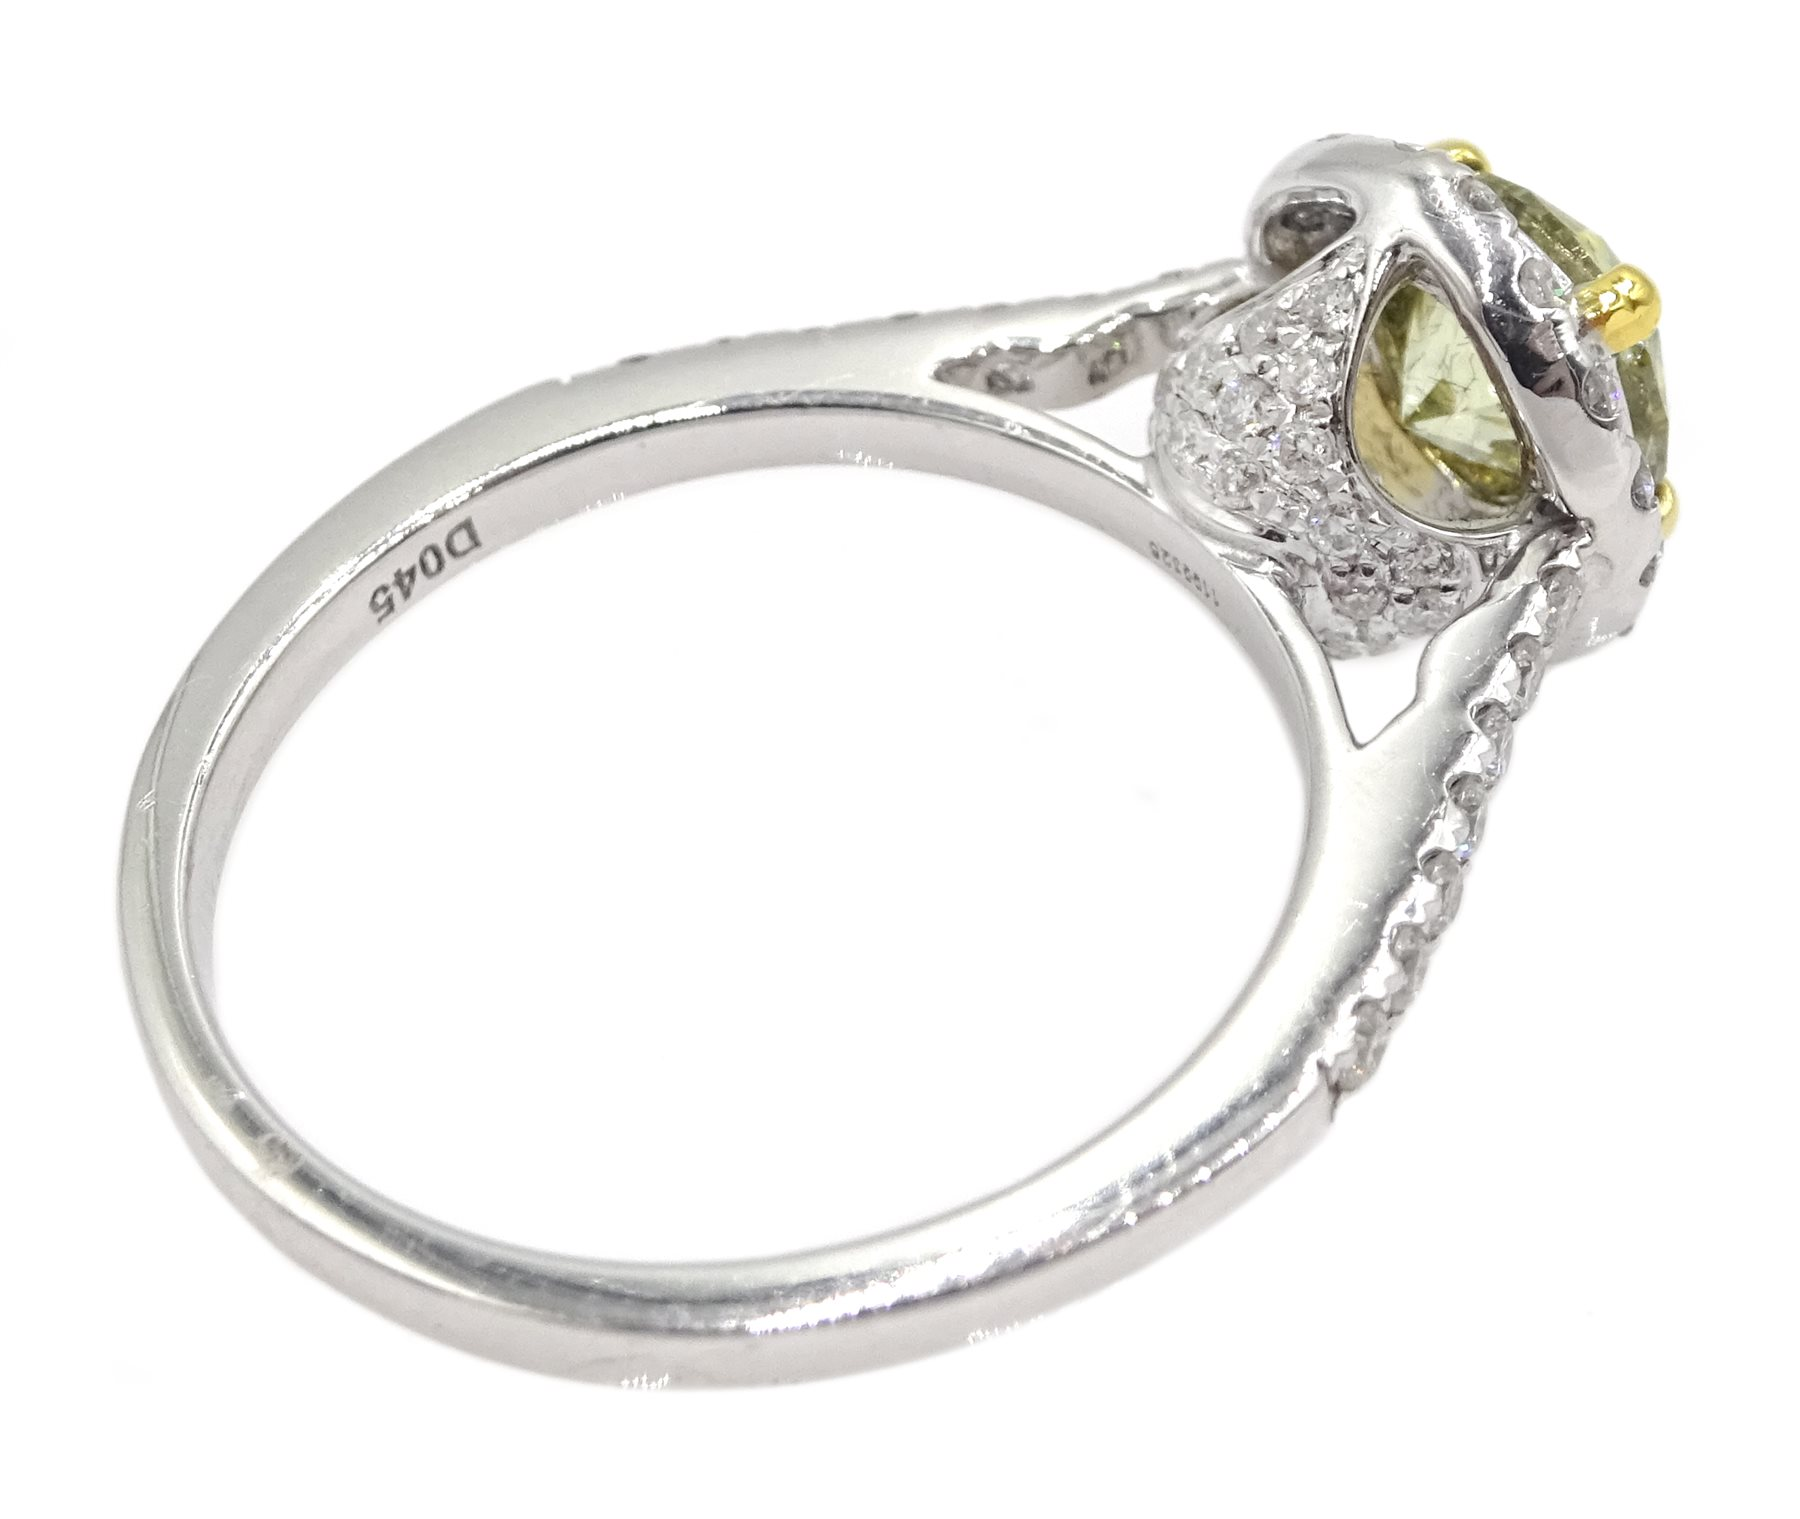 18ct white gold diamond halo ring, the central round brilliant cut fancy yellow diamond of 1.02 cara - Image 5 of 6